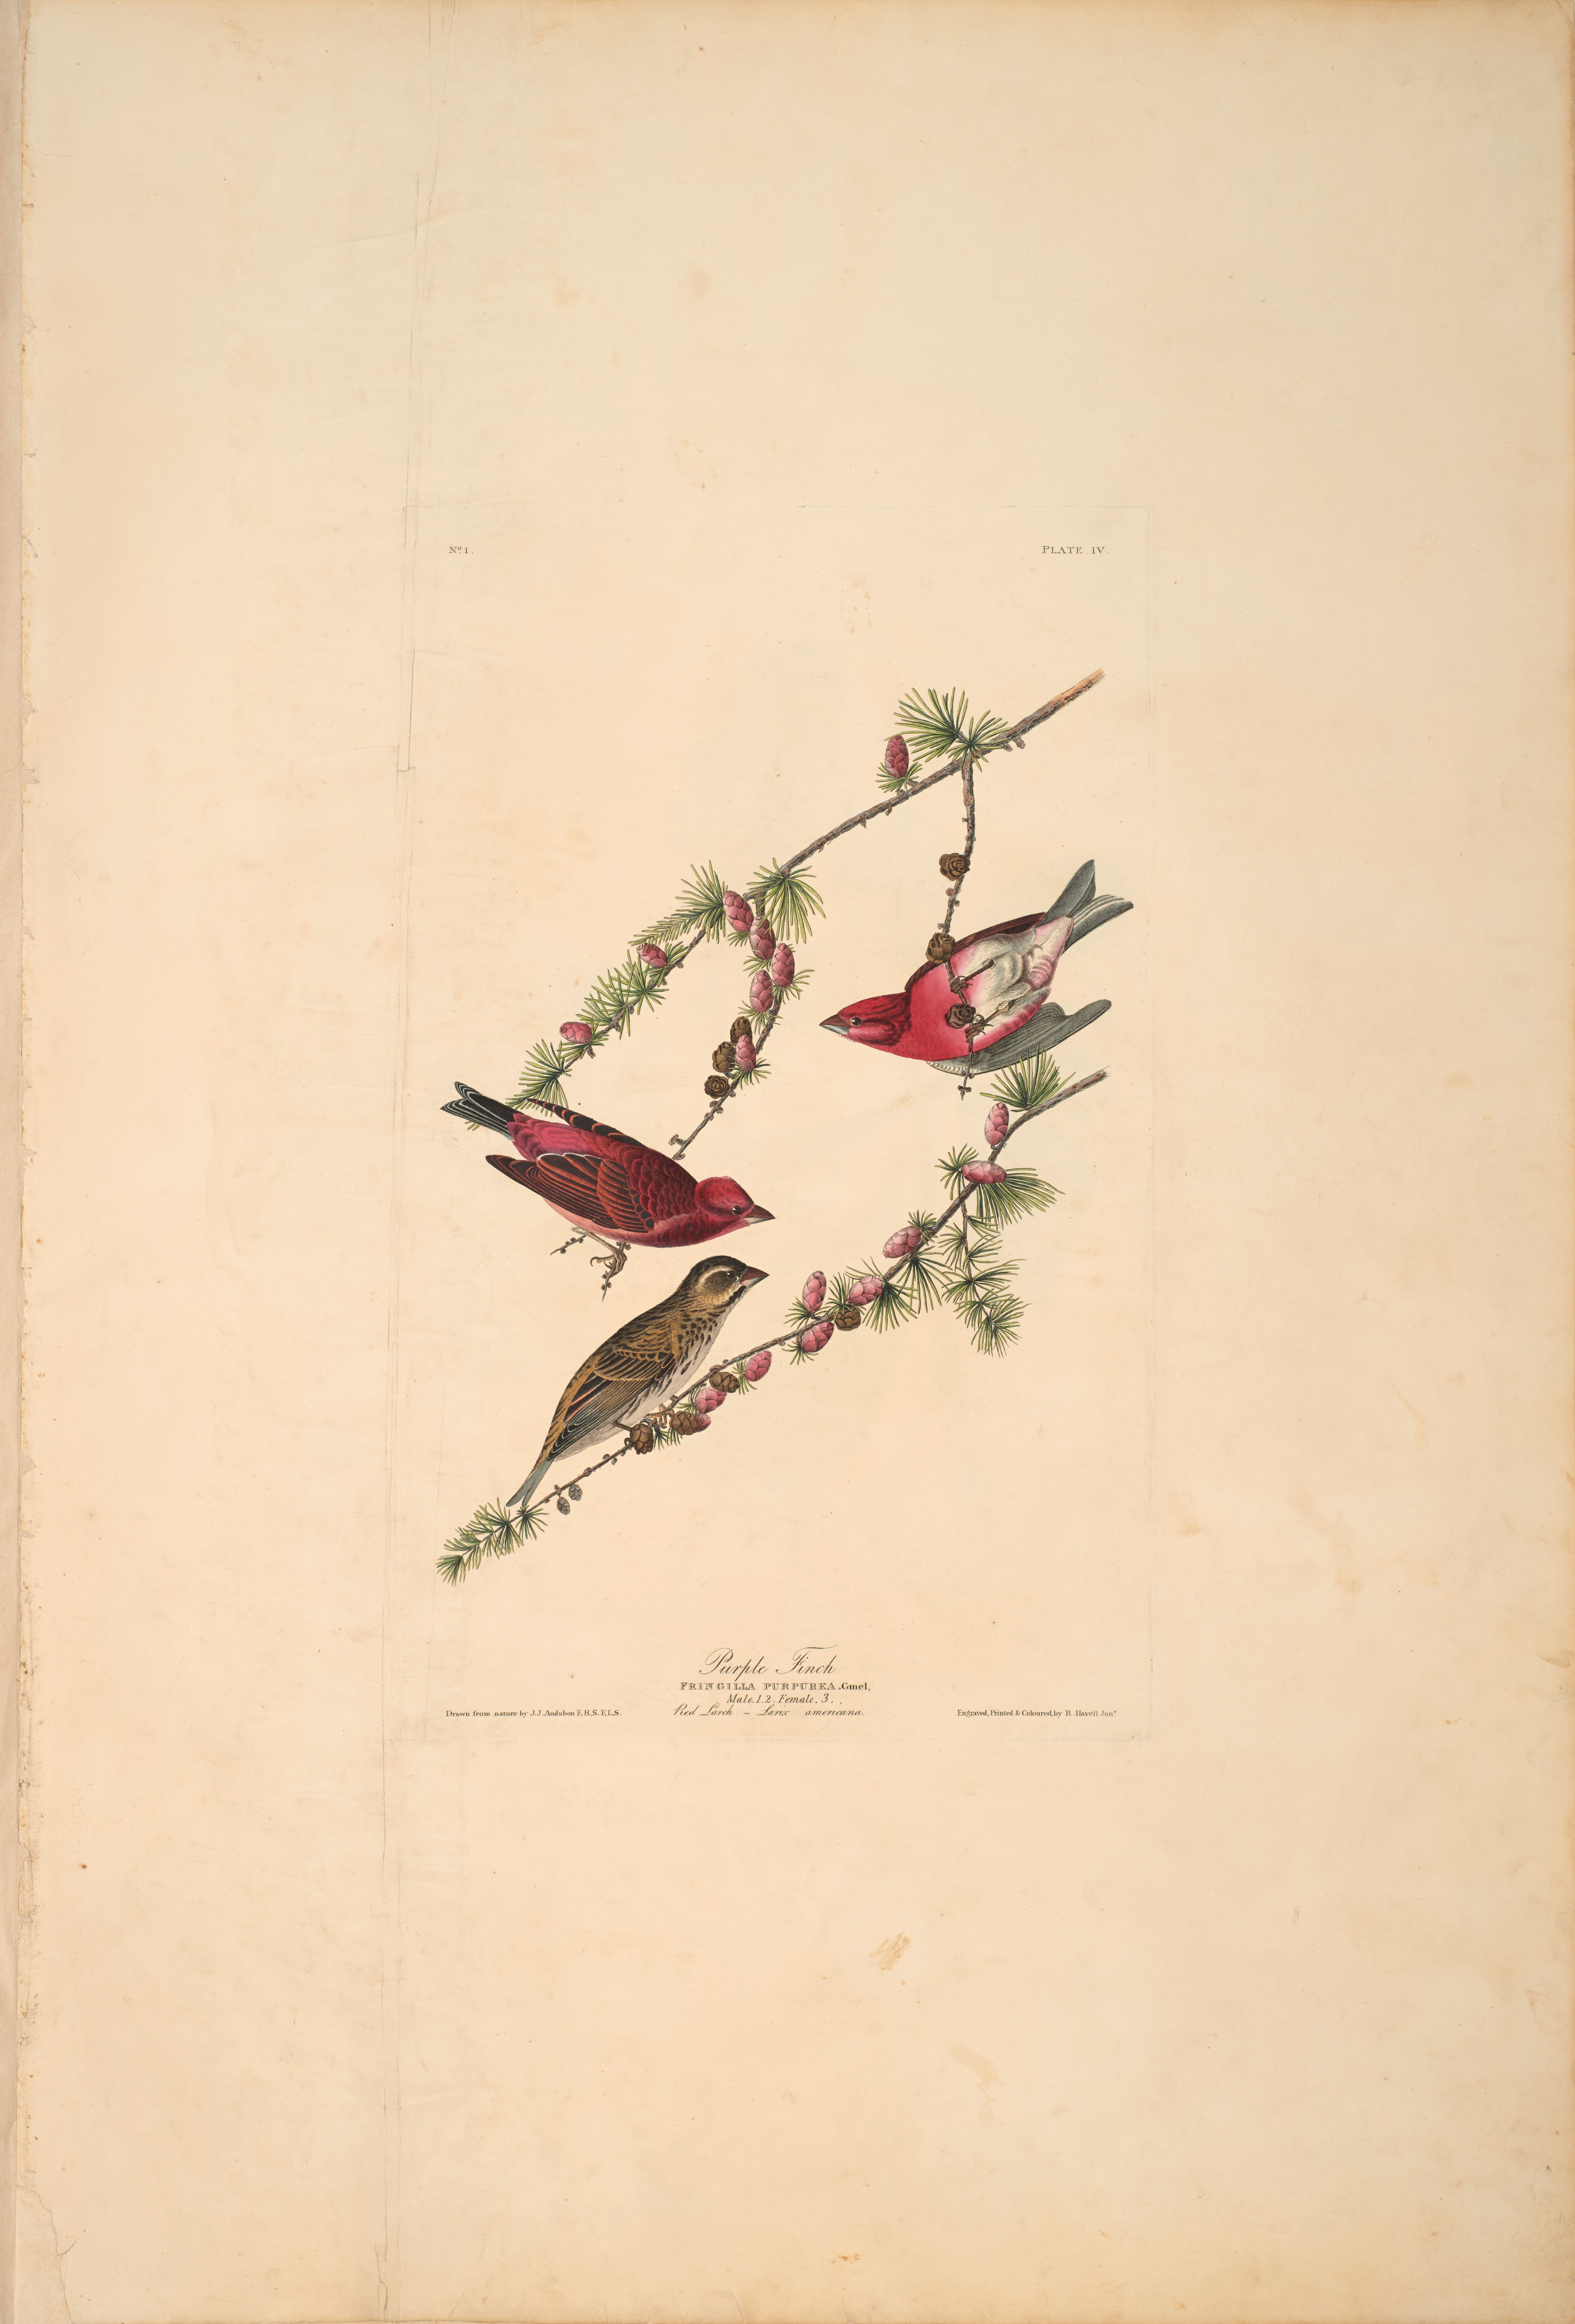 John James Audubon, Purple Finch, from The Birds of America, 1827 – 38 , hand - colored aquatint/engraving on paper , 40 x 26 in., North Carolina Museum of Art, Transfer from the North Carolina State Library